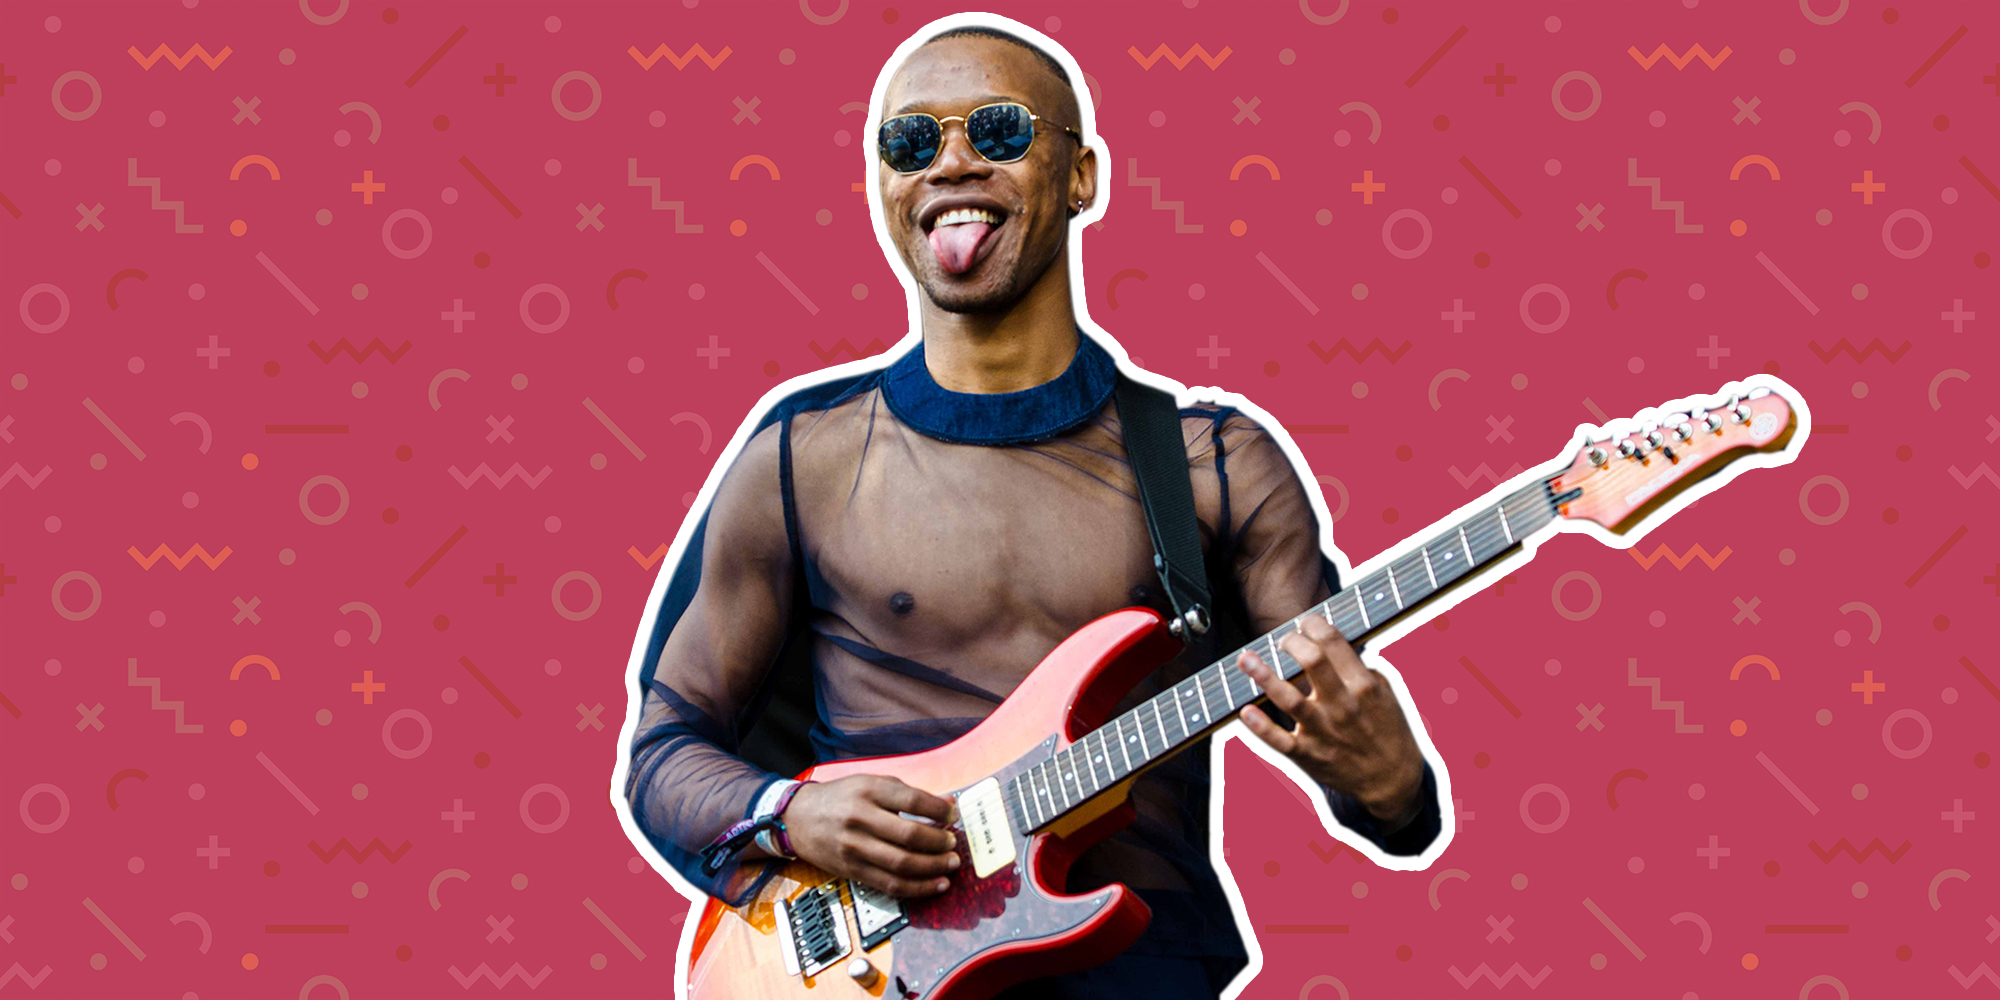 Meet the South African Singer Whose Video Was Too Gay for YouTube